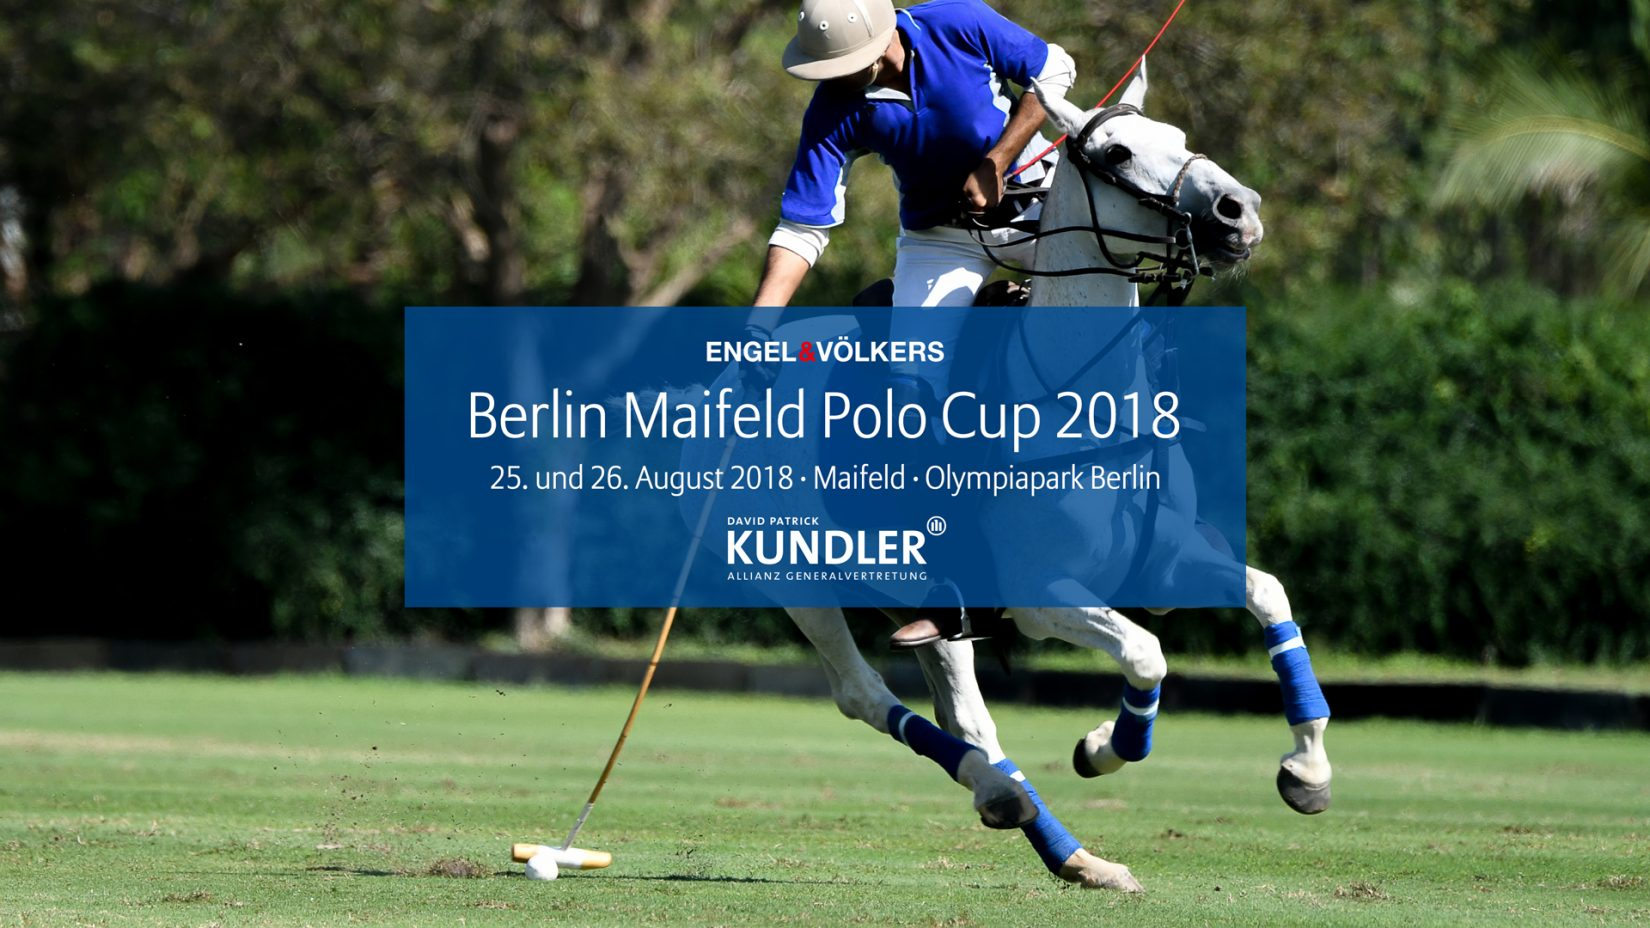 Maifeld Polo Cup 2018 - Sponsored by Allianz Kundler Berlin